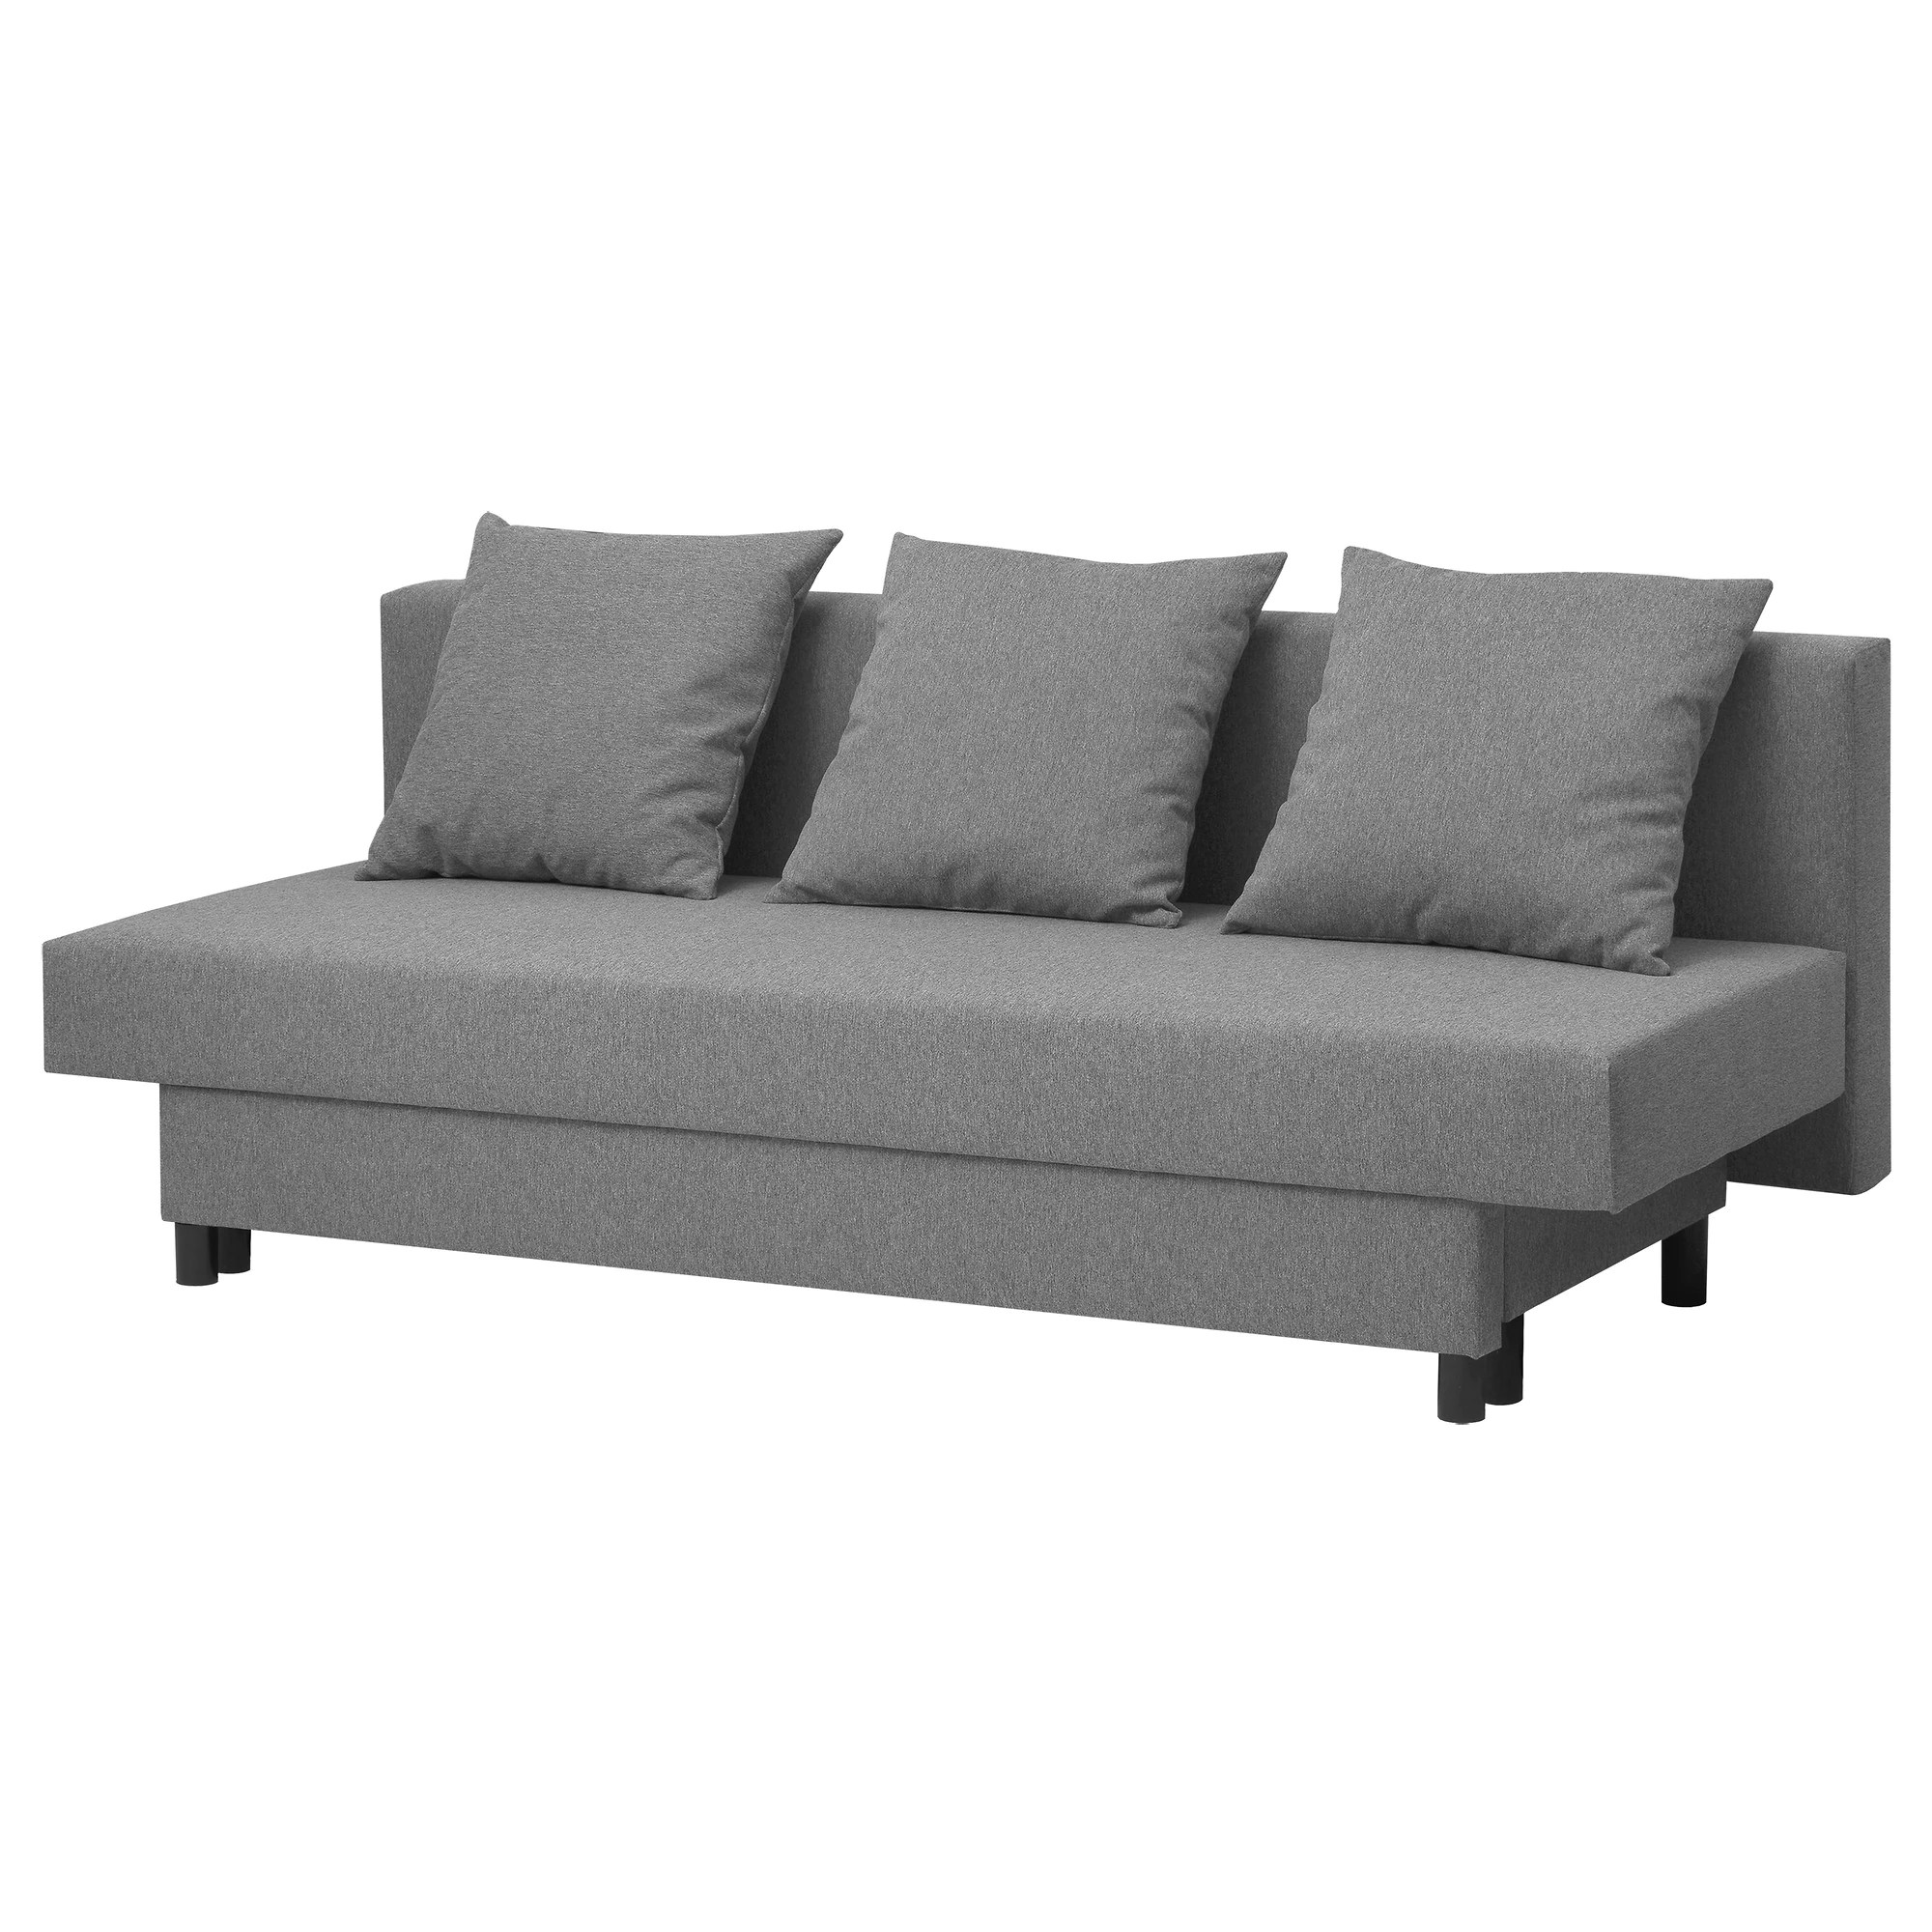 Bettsofa Ikea Bewertung 3er Bettsofa Asarum Grau